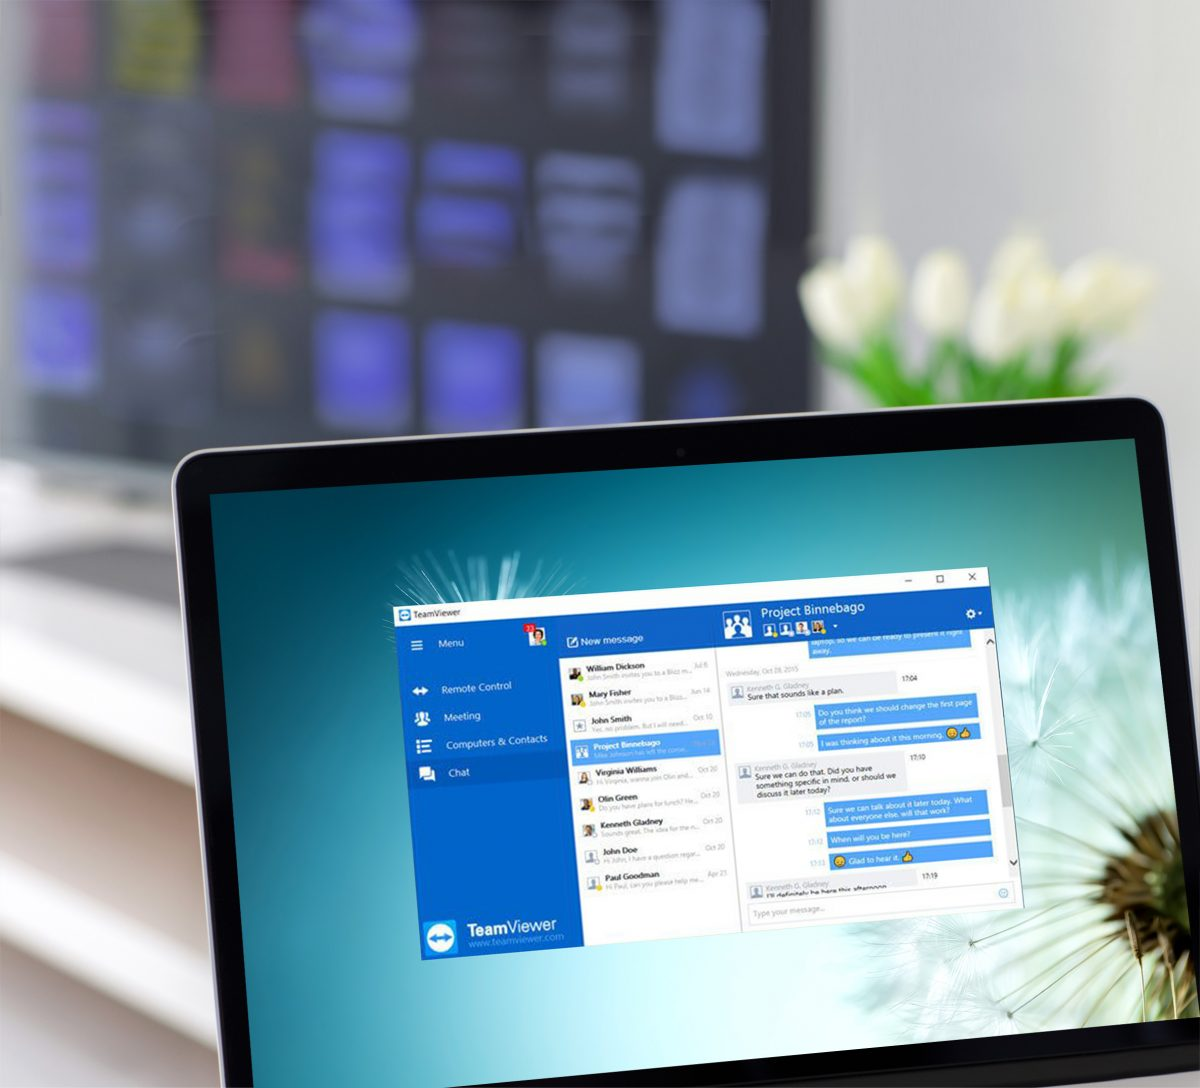 laptop screen displaying windows remote desktop and instant messaging by TeamViewer